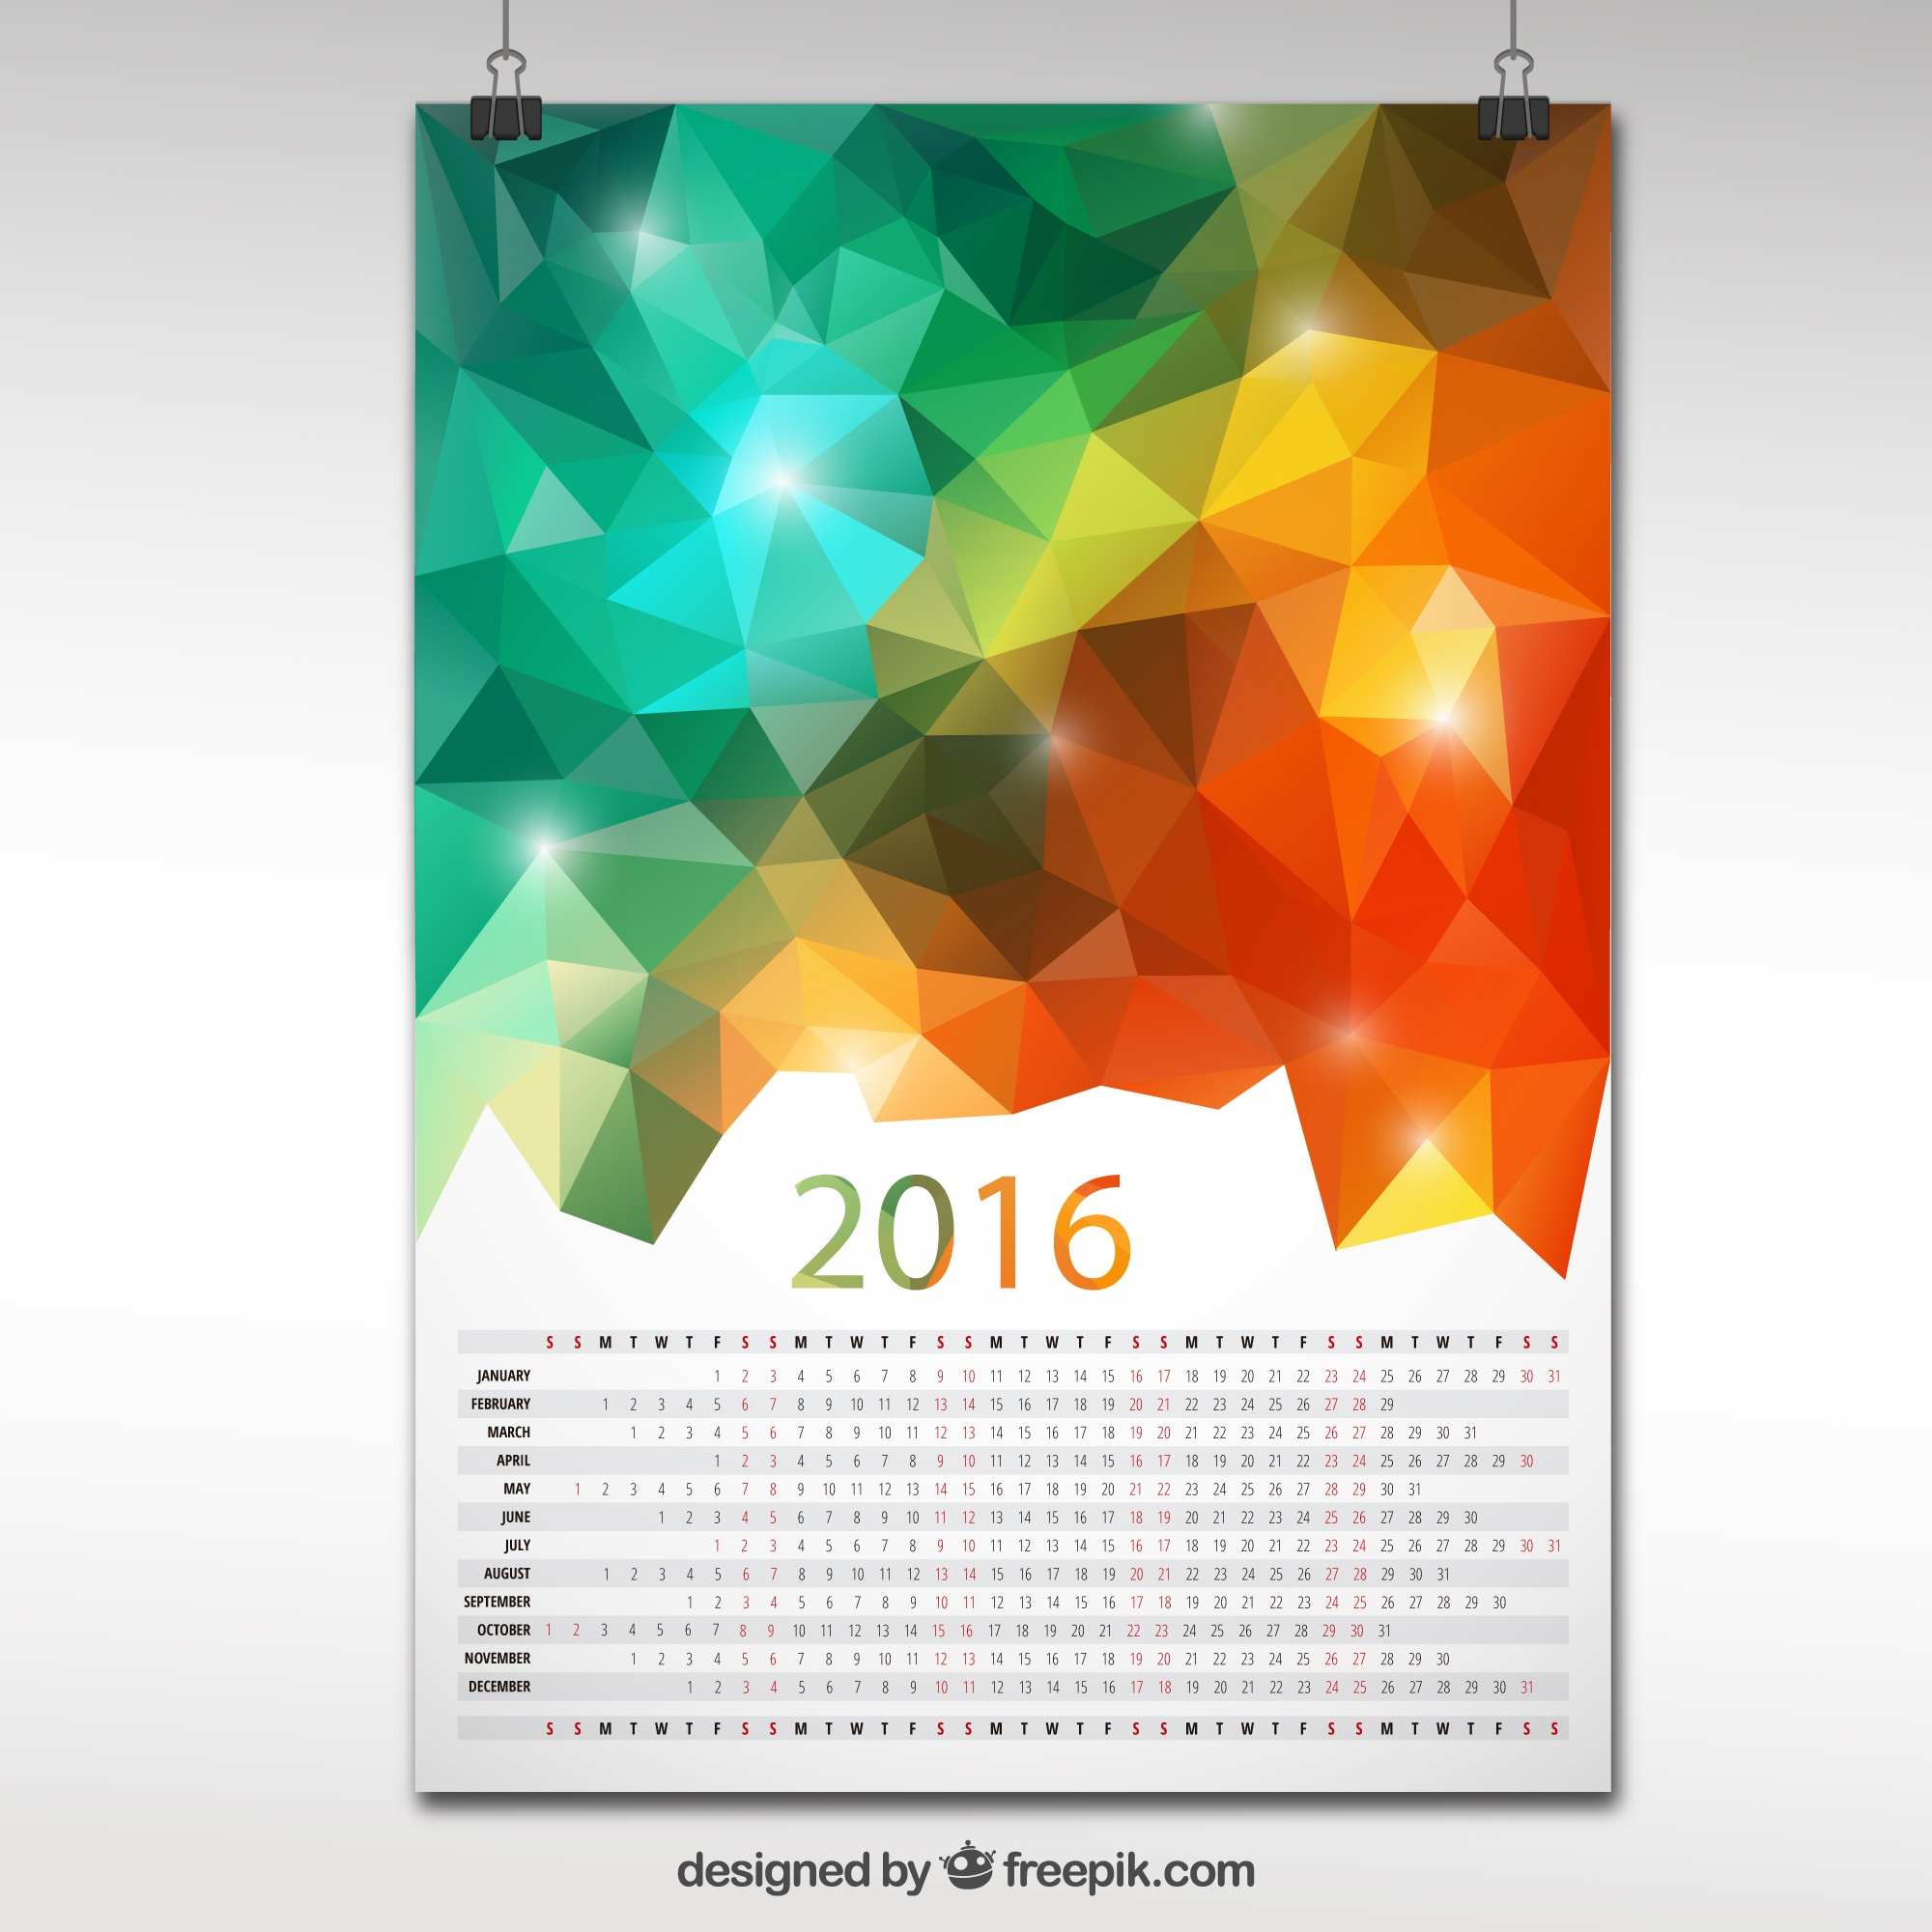 2016 calendar in polygonal design